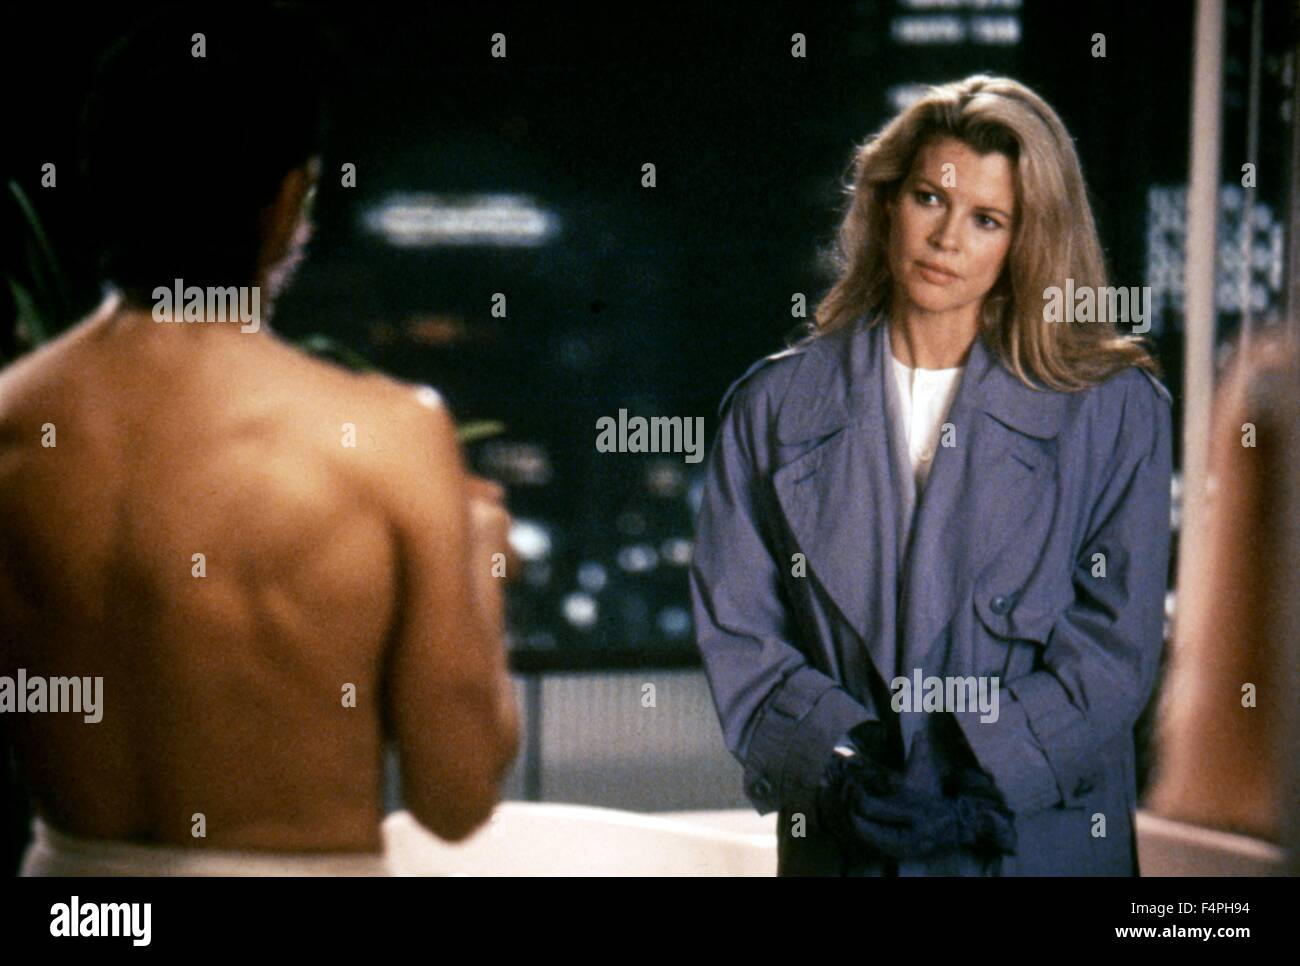 Kim Basinger / Final Analysis / 1992 directed by Phil Joanou - Stock Image